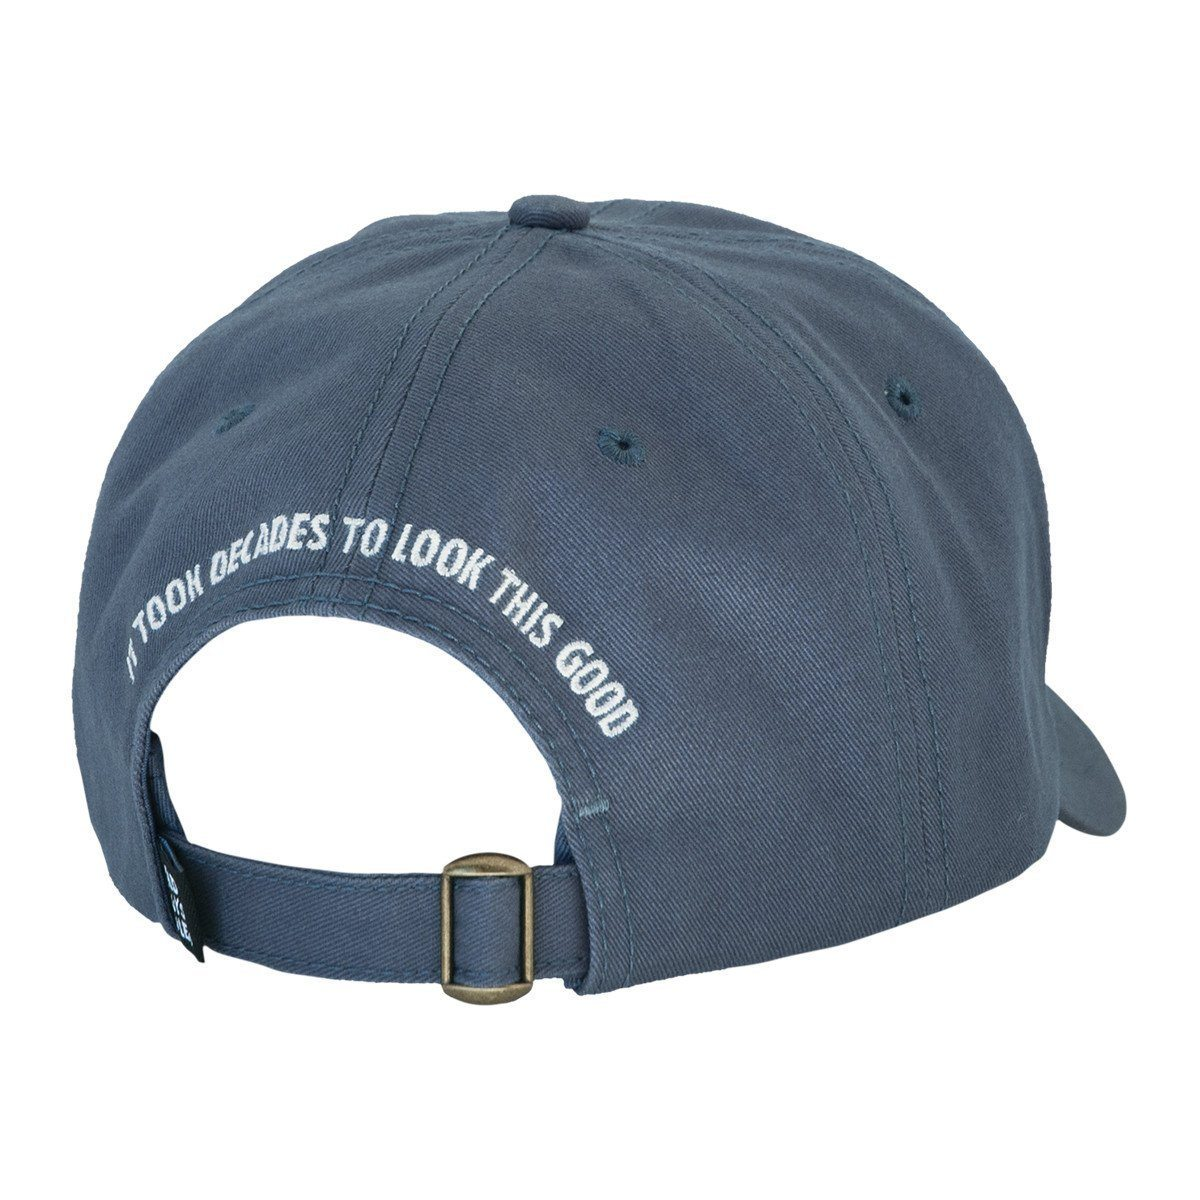 Old Guys Rule - It Took Decades - Slate Hat - Back View 97a0410b024a